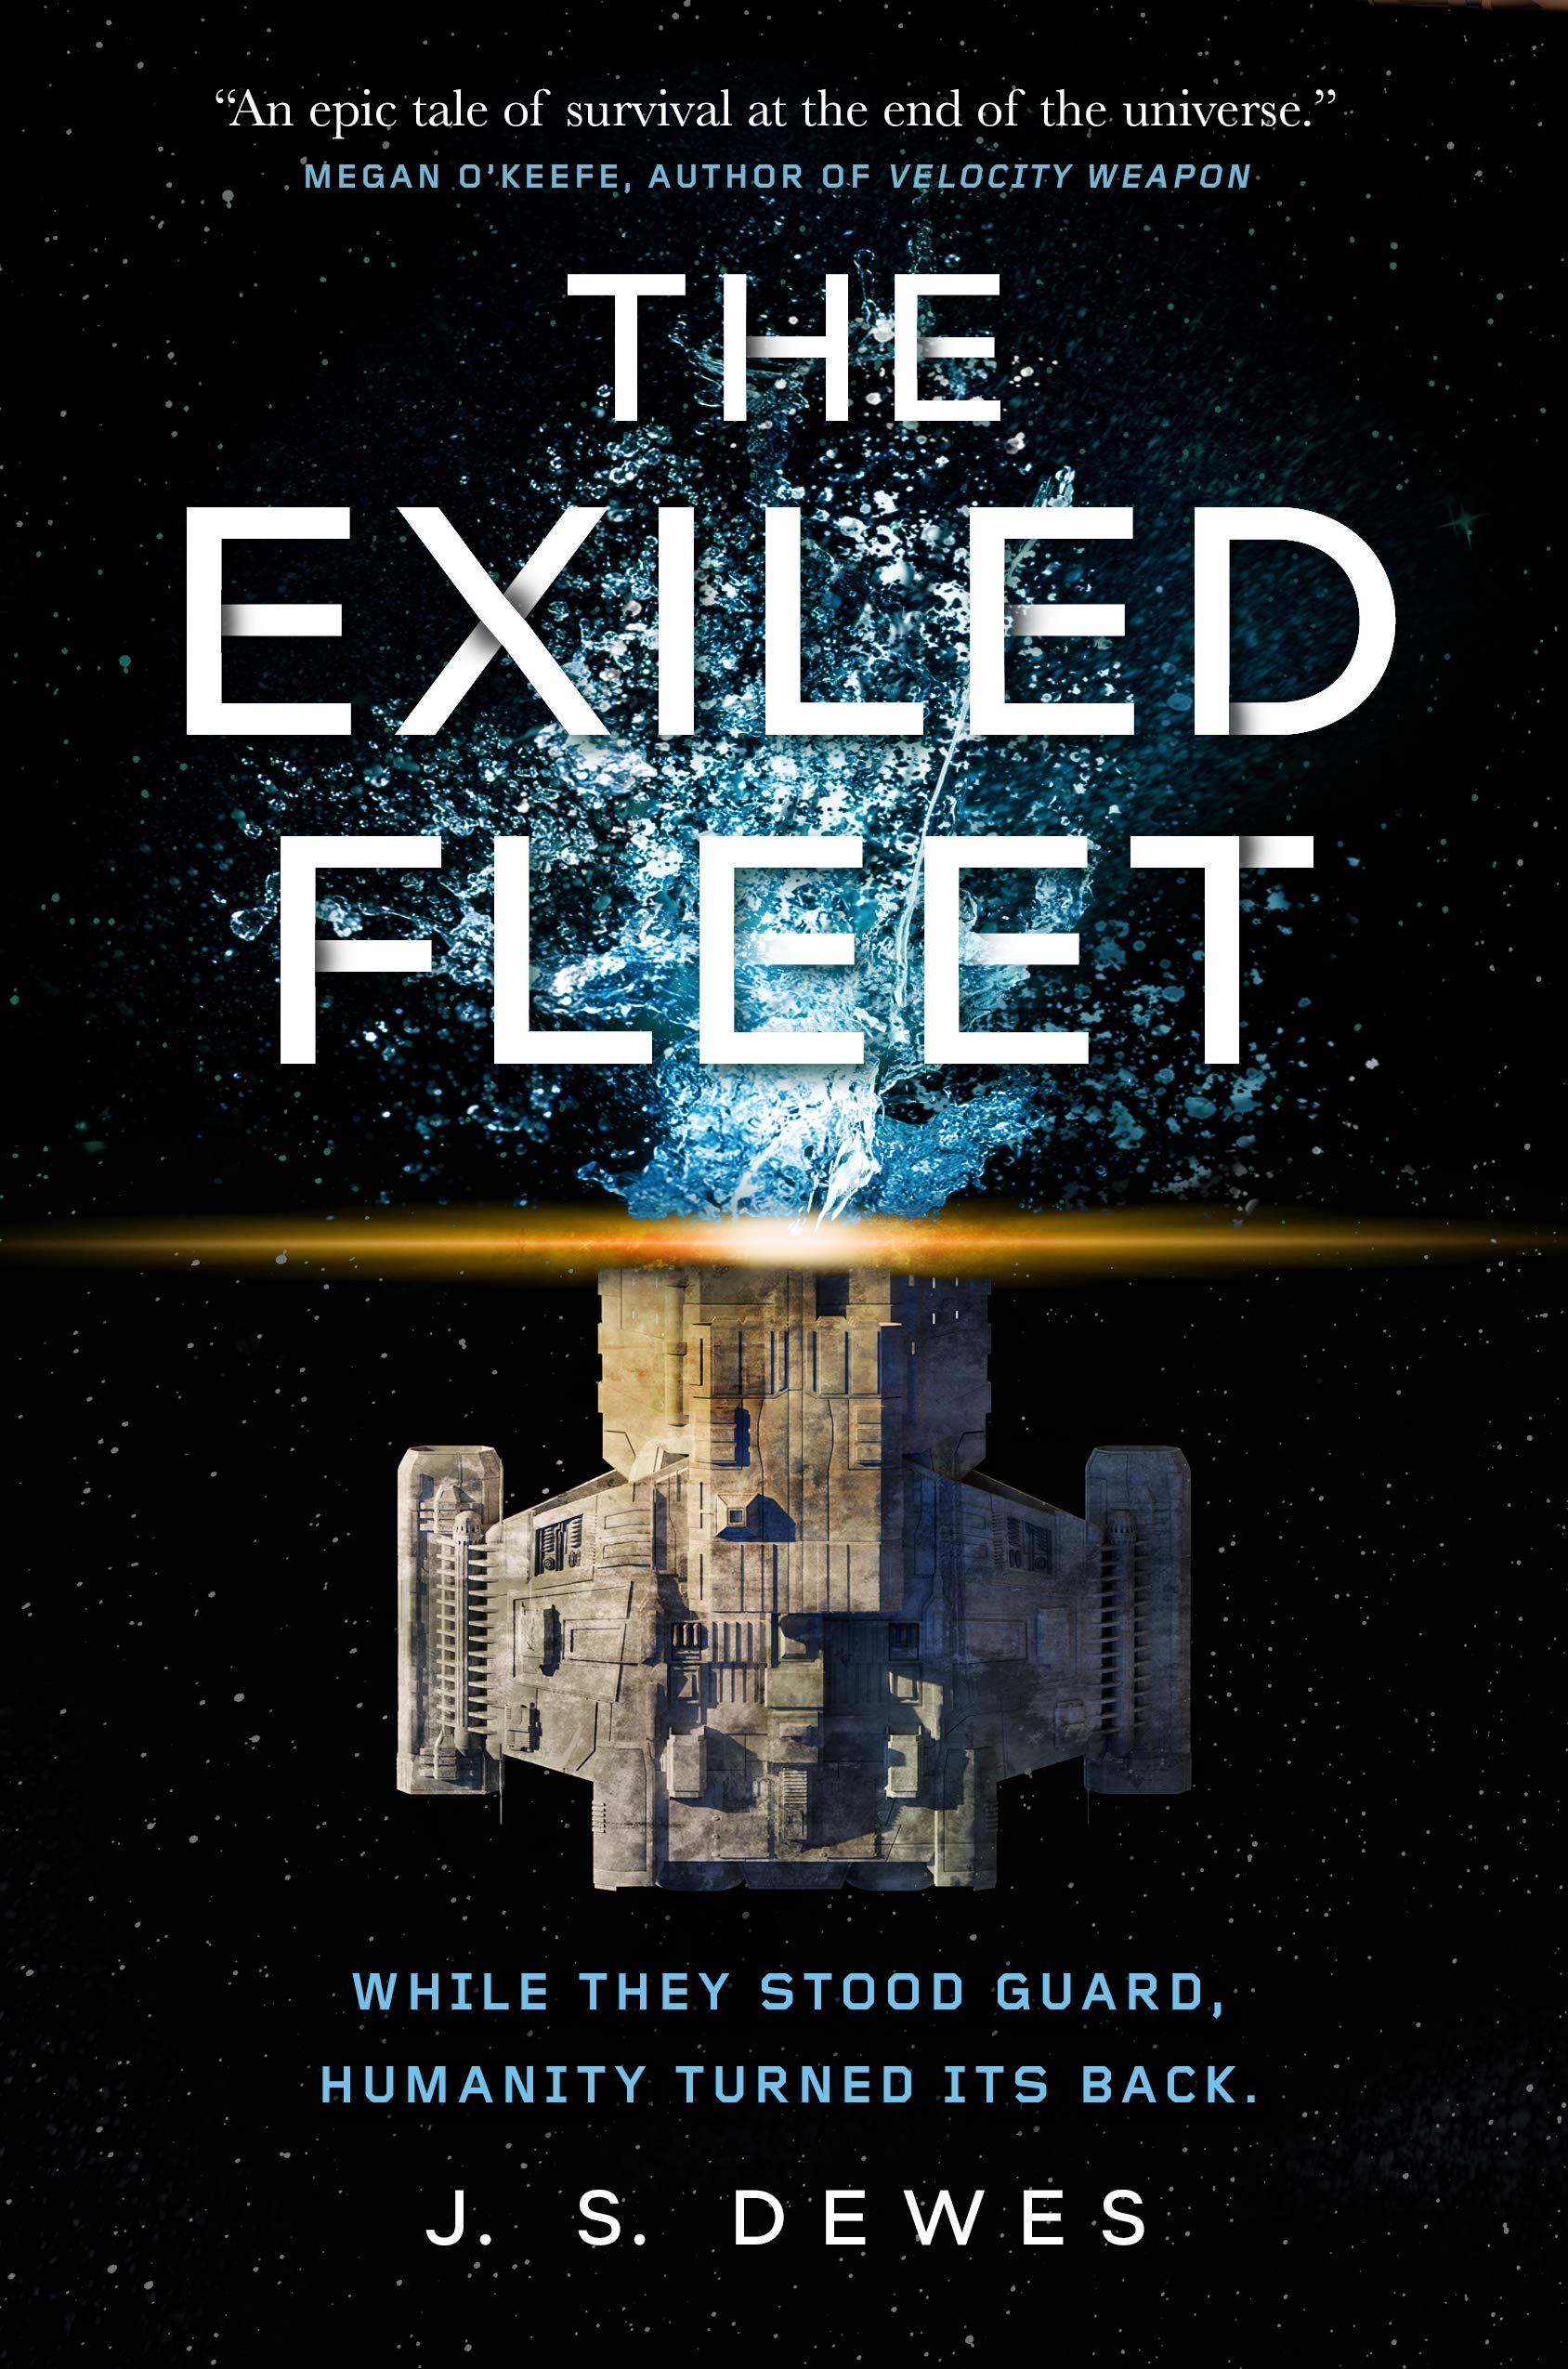 The Exiled Fleet by J.S. Dewes